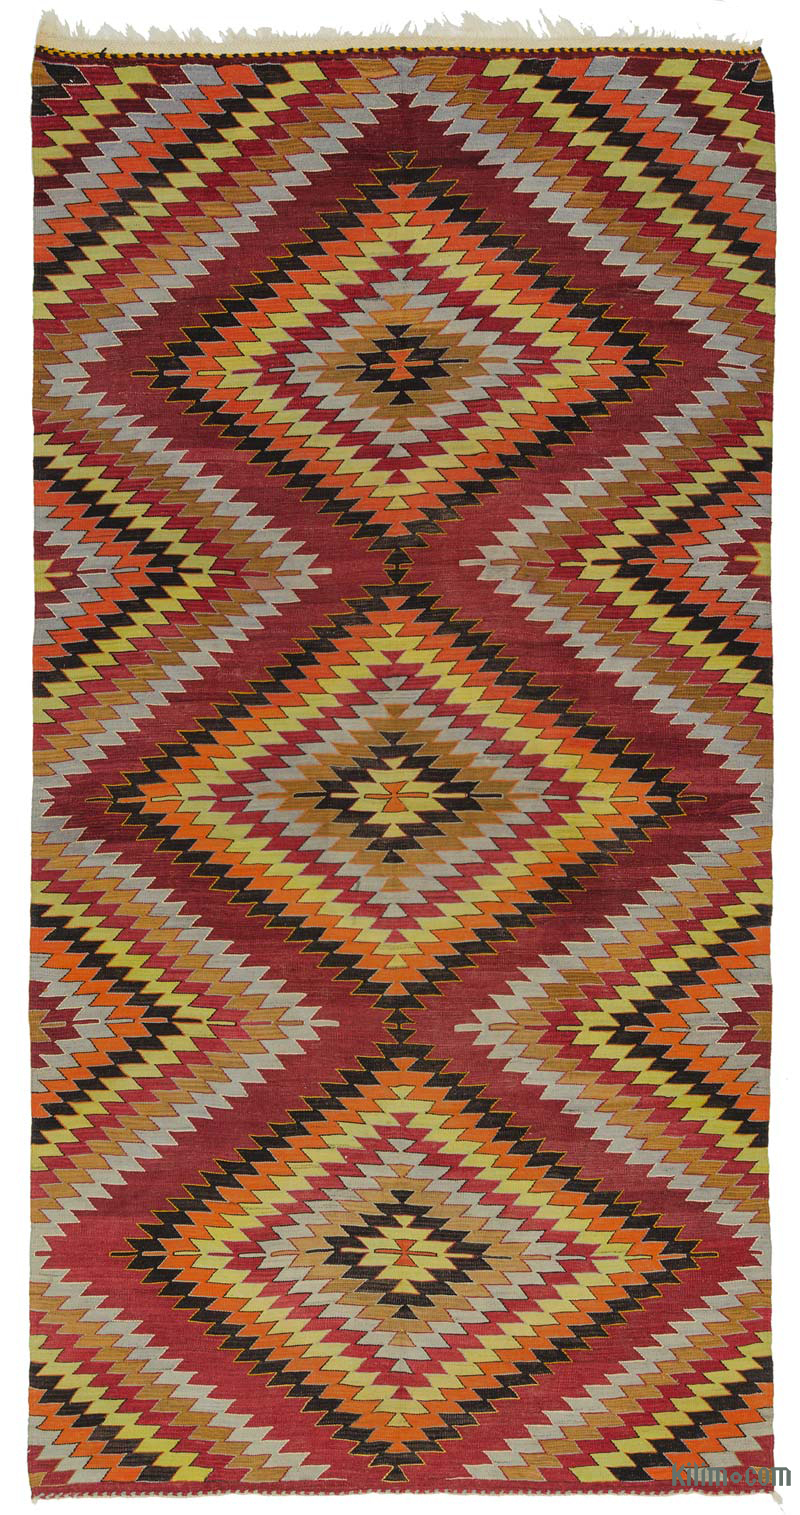 K0013270 Red Vintage Turkish Kilim Rug 5 8 X 11 5